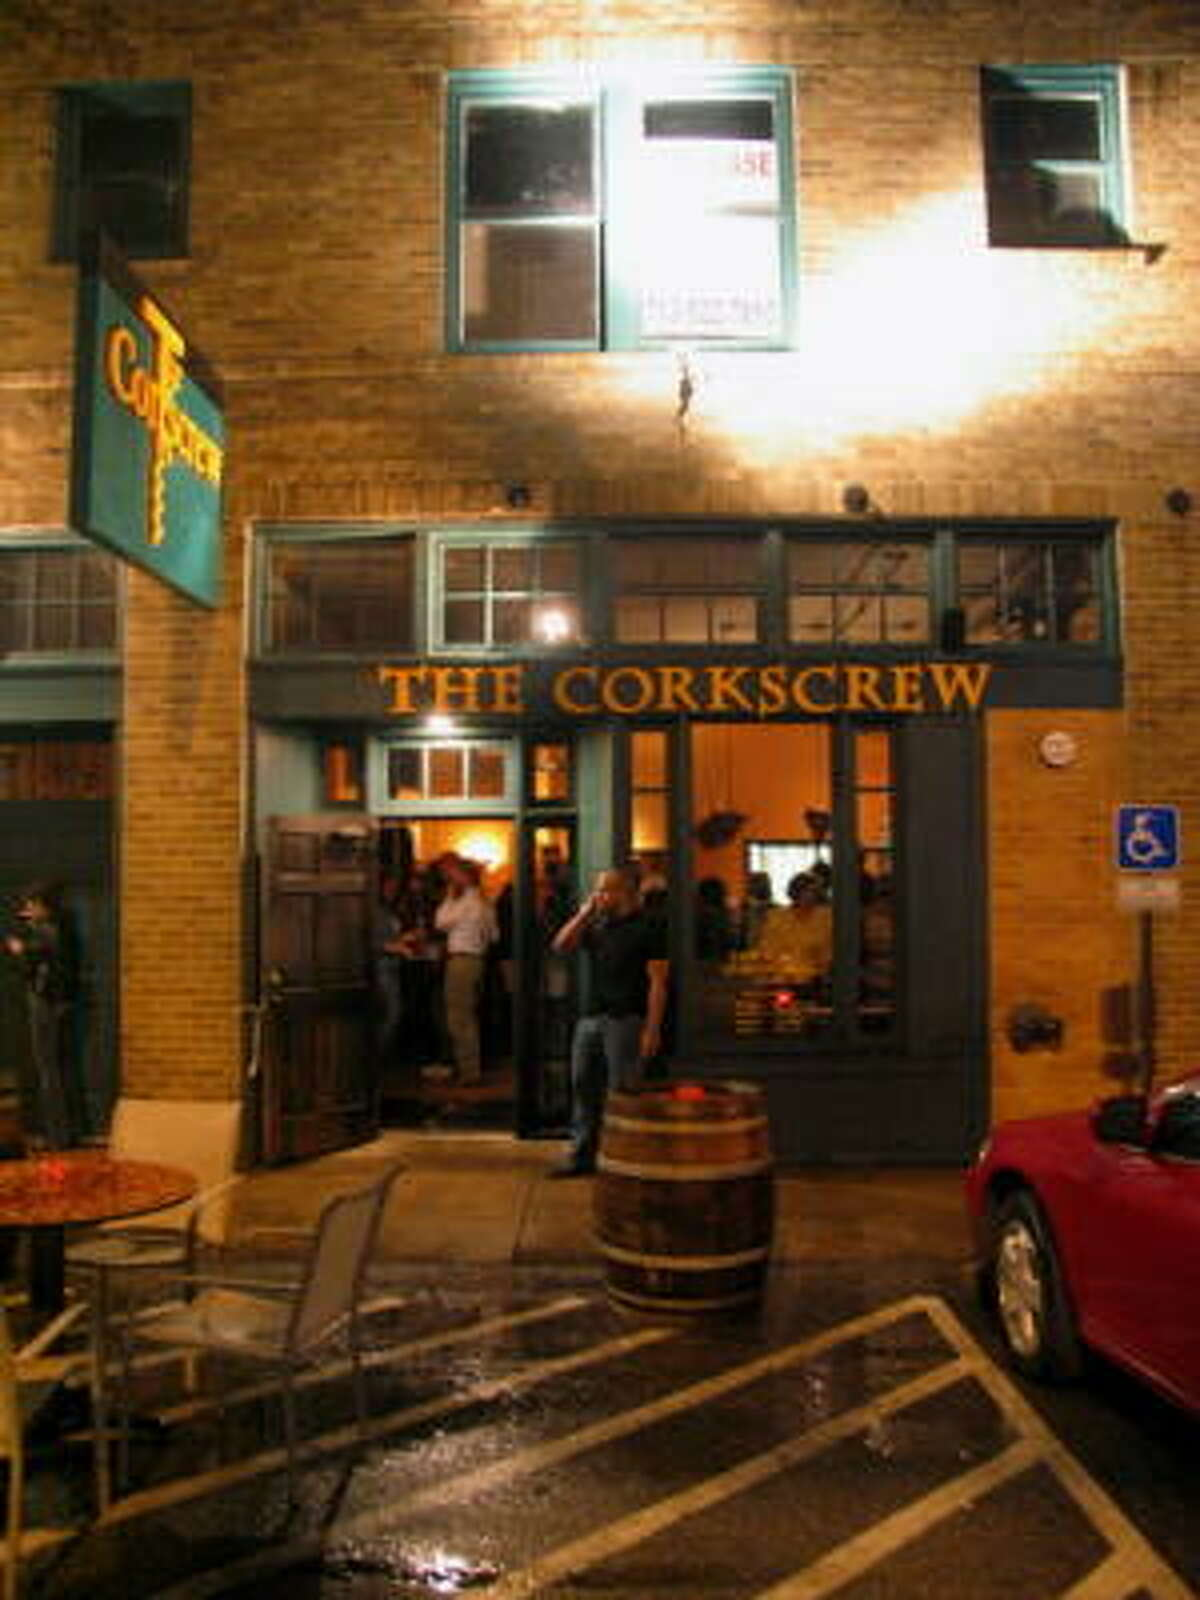 The Corkscrew hosted an Anti-Valentine's Day party with an 80s theme on Saturday night. The low-key event consisted of some singles, some couples and plenty of wine. The Corkscrew is located at 1919 Washington.